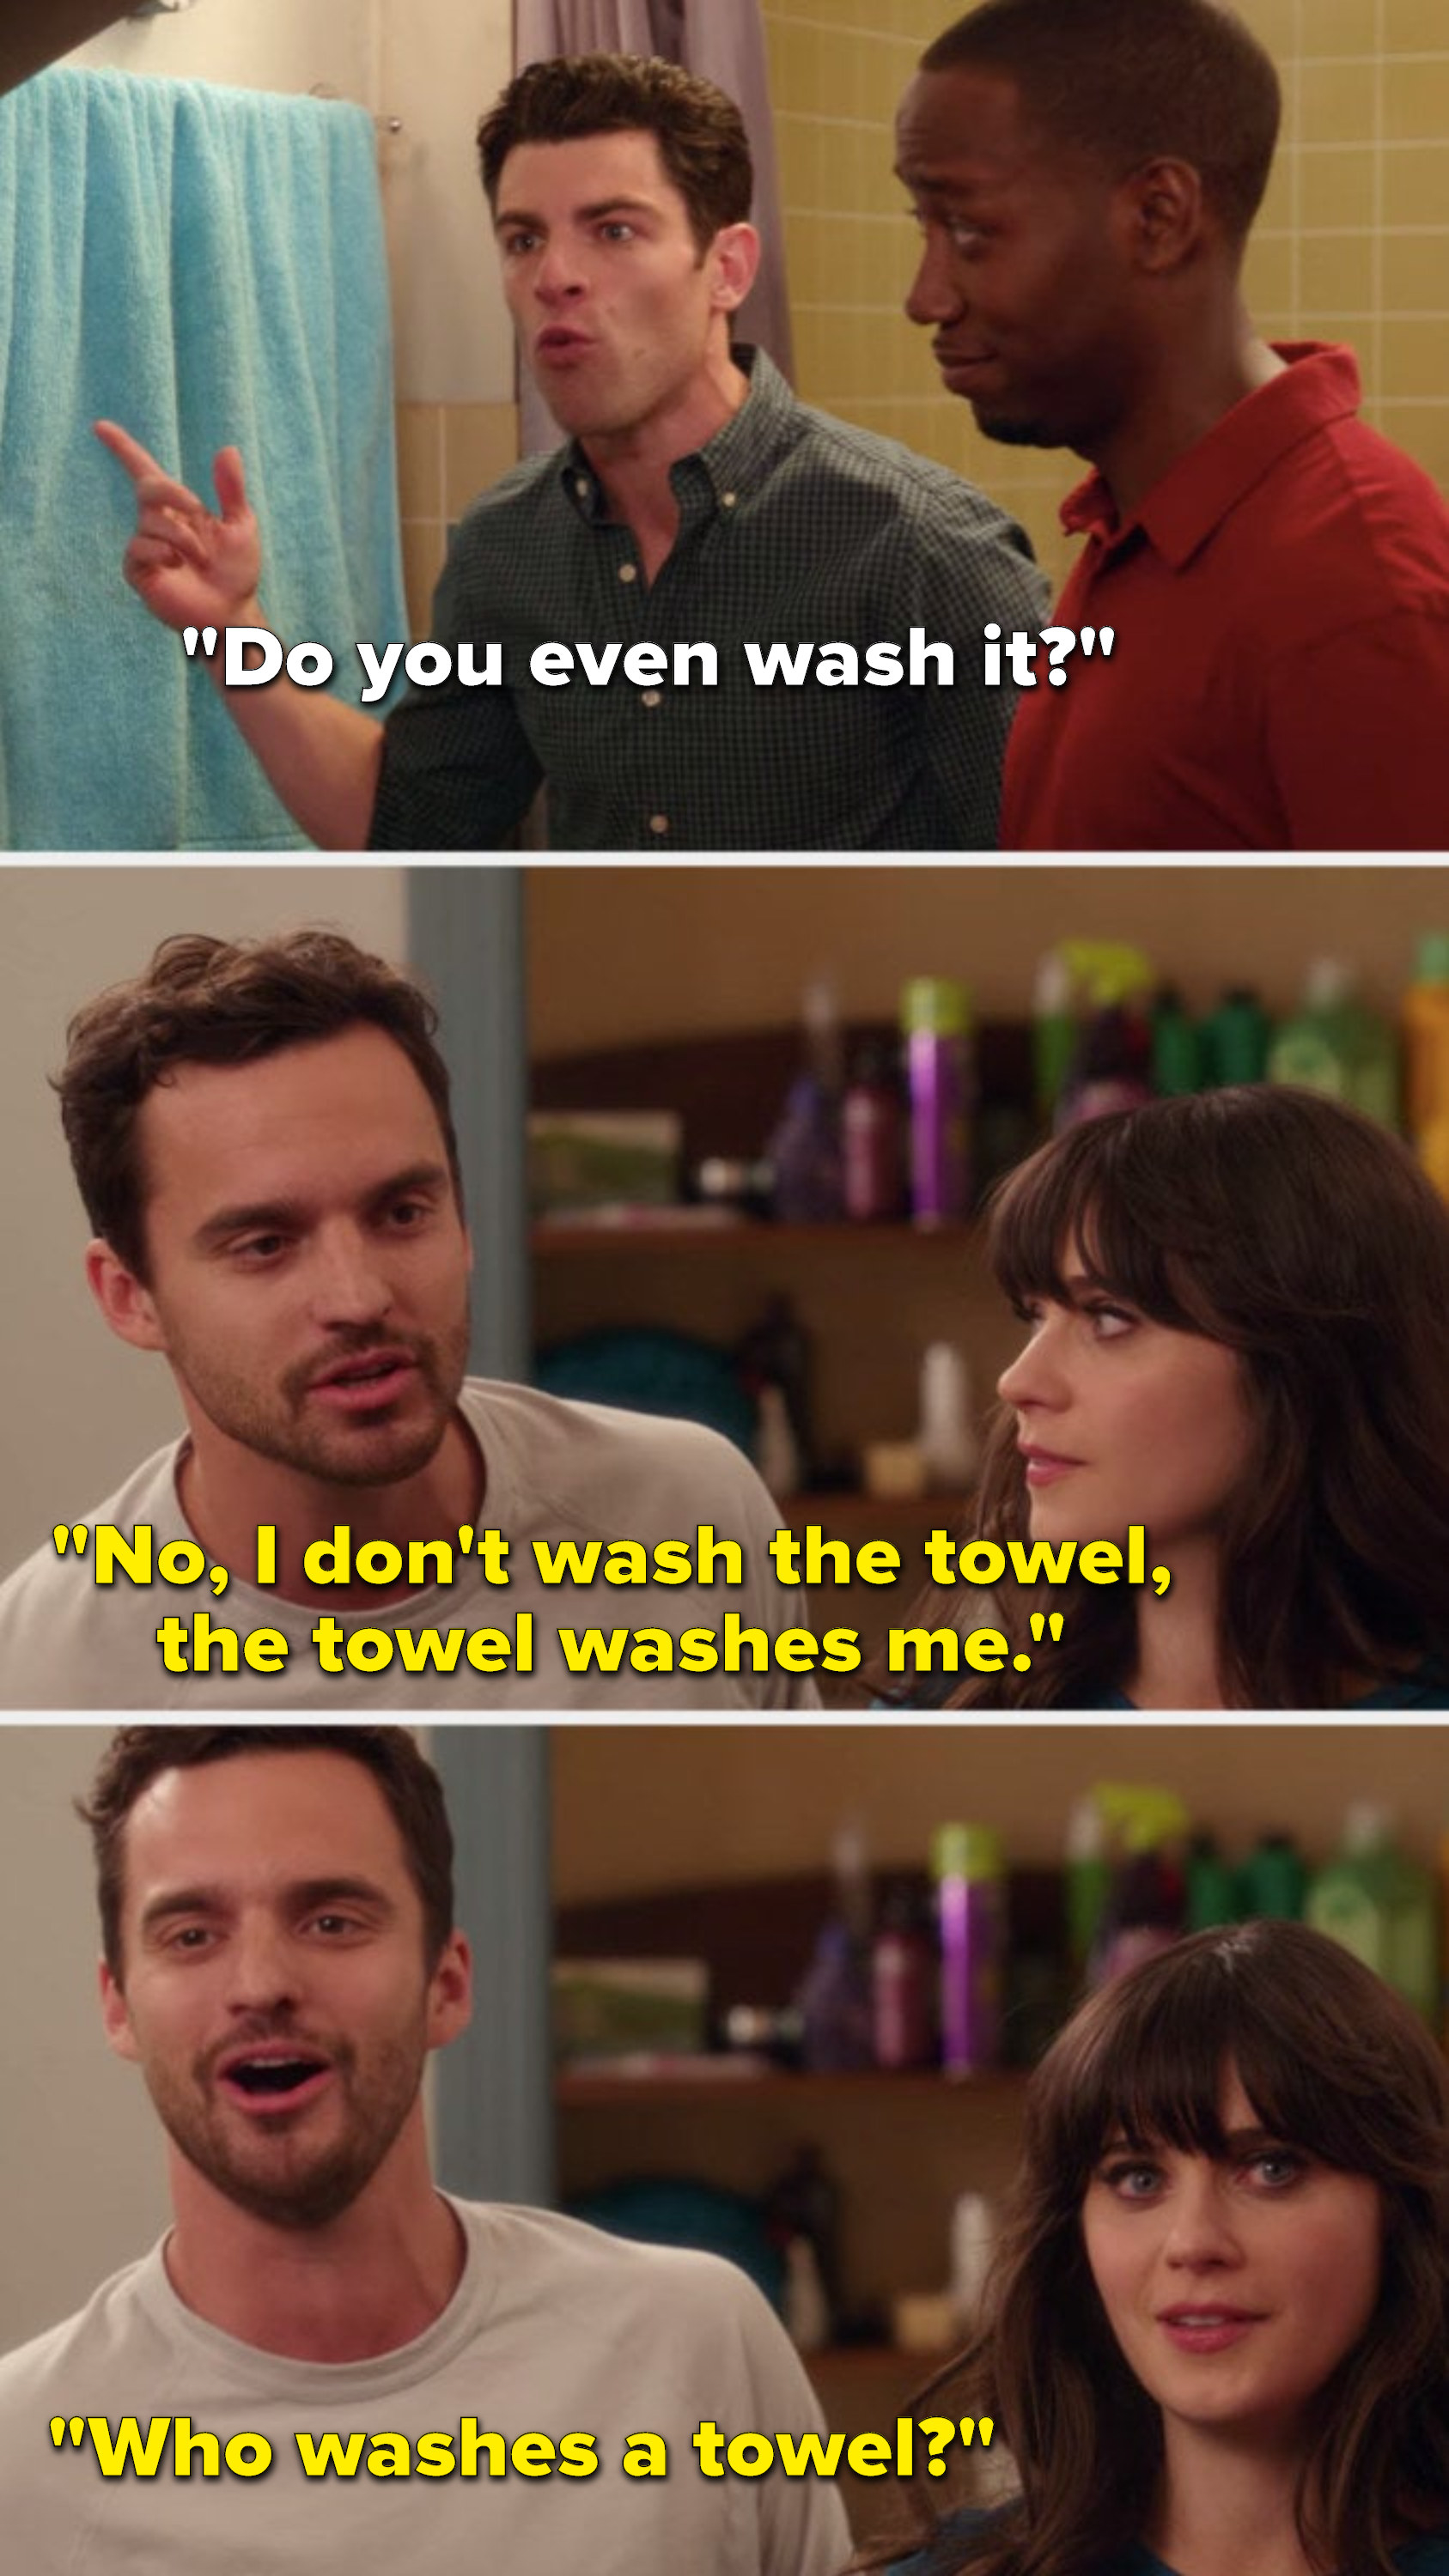 Schmidt says, Do you even wash it, and Nick says, No, I don't wash the towel, the towel washes me, who washes a towel